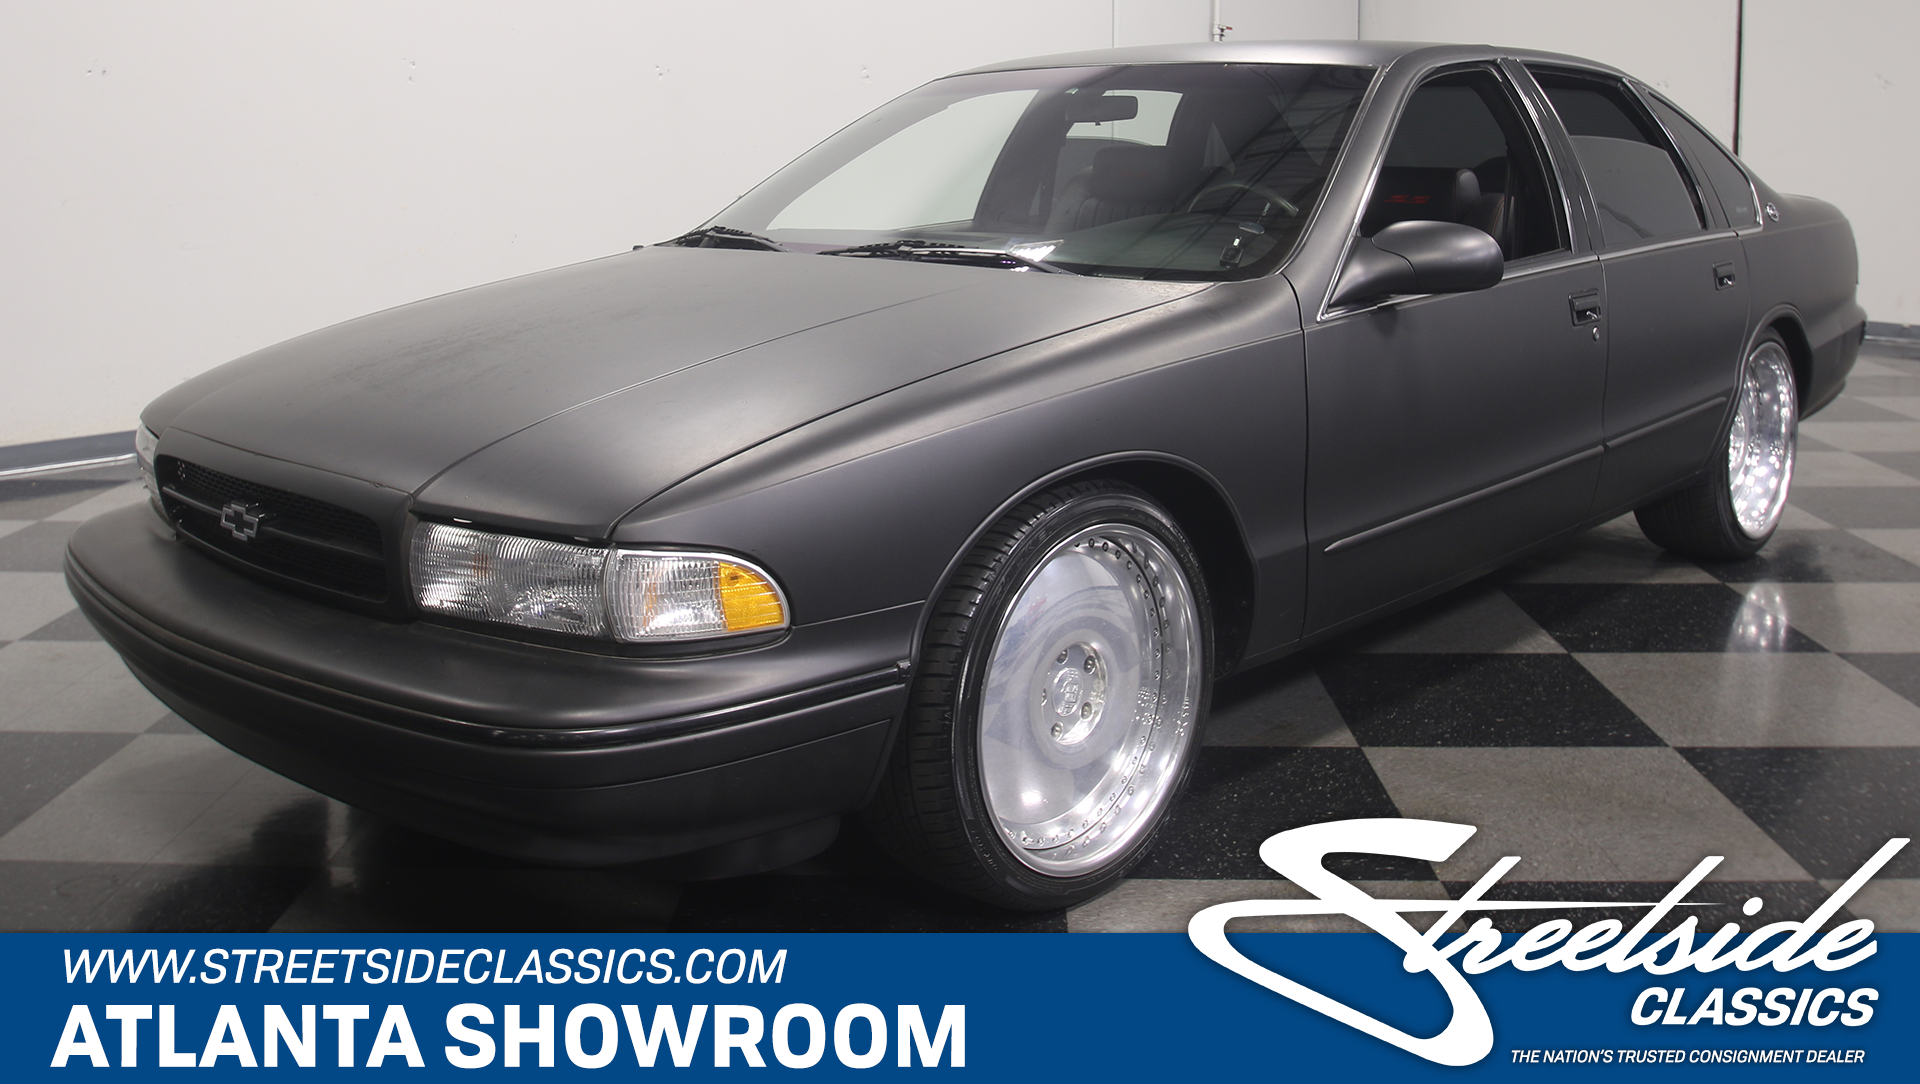 1996 chevrolet impala streetside classics the nation 39 s trusted classic car consignment dealer. Black Bedroom Furniture Sets. Home Design Ideas